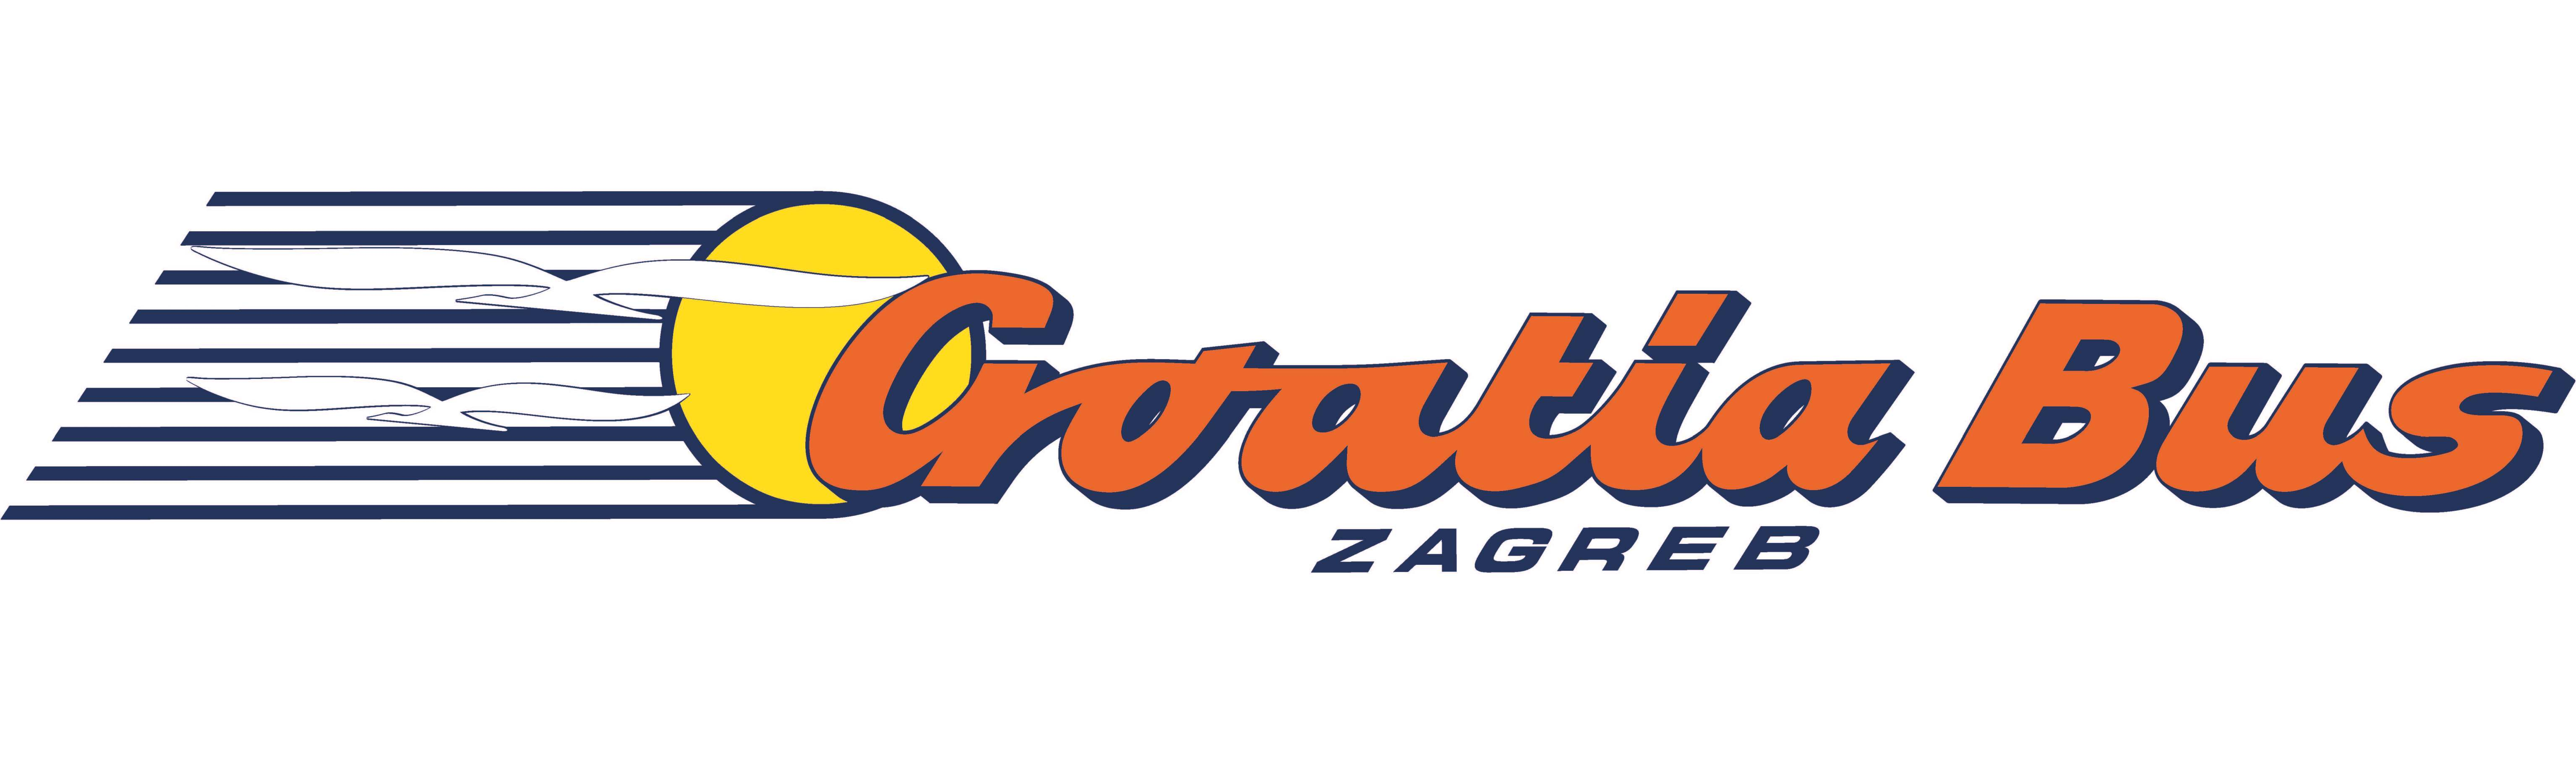 logo 1Croatia bus